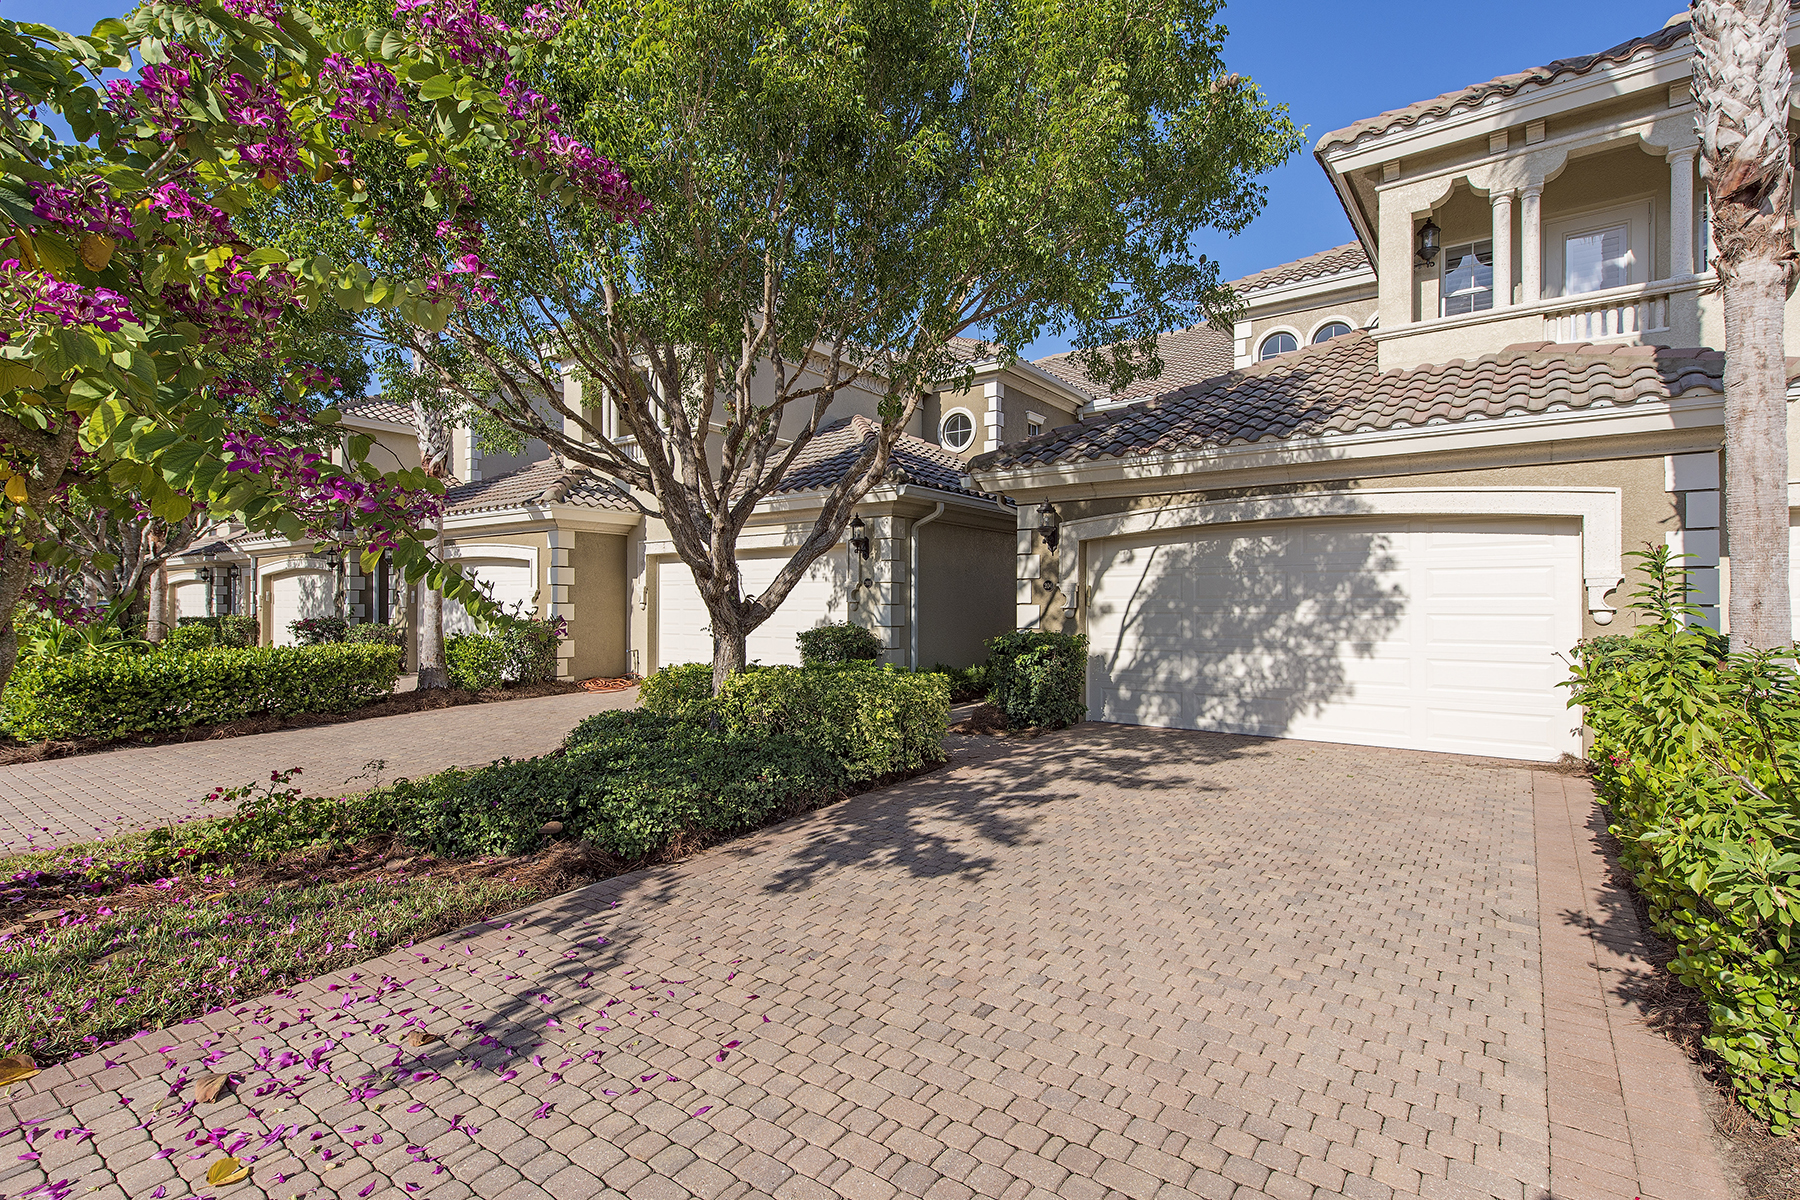 Condominium for Sale at FIDDLERS CREEK 9209 Museo Cir 204 Naples, Florida, 34114 United States